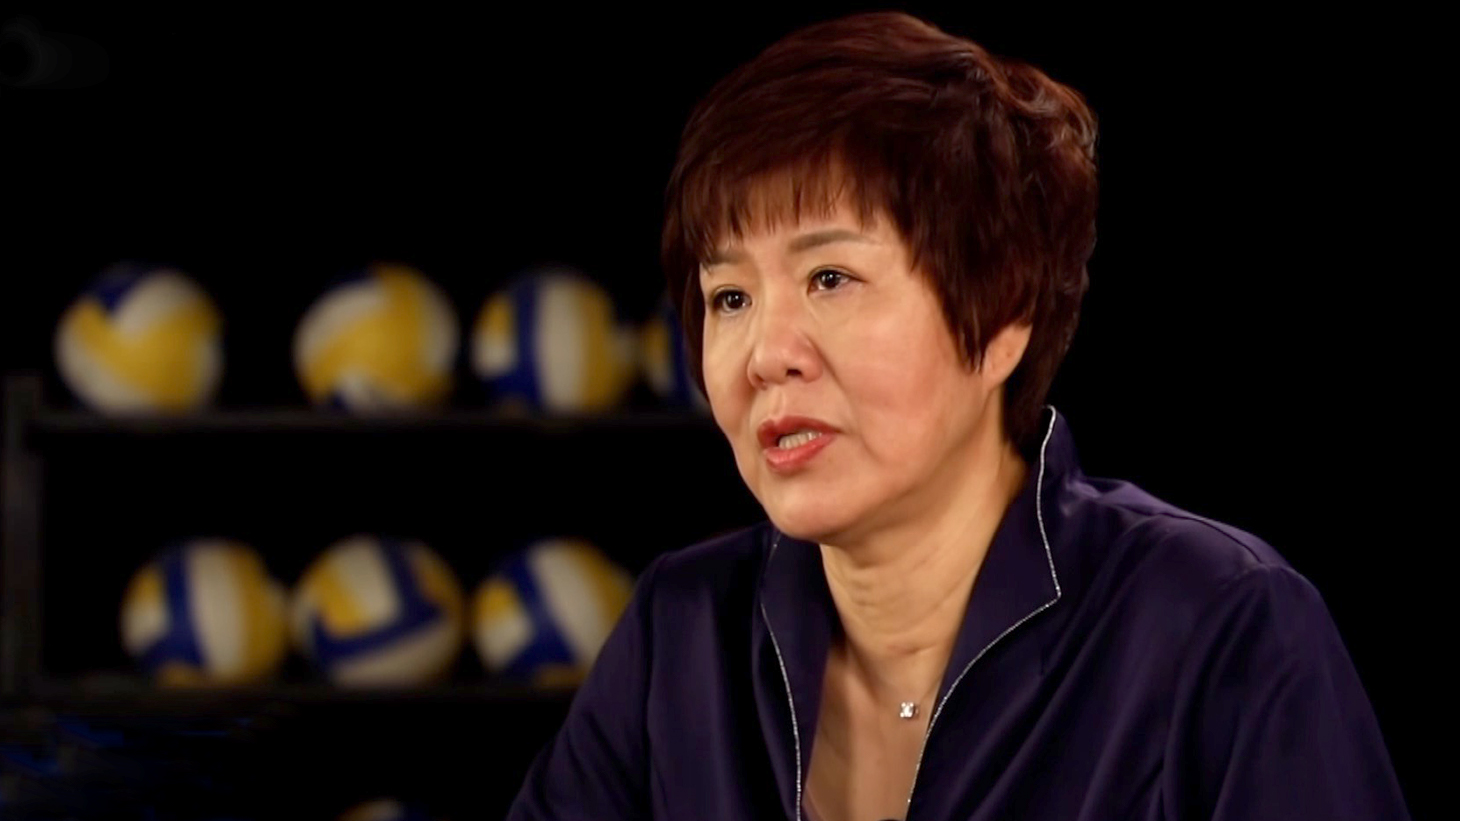 China Women S Volleyball Coach Lang Ping Just Focus On Your Own Way Cgtn